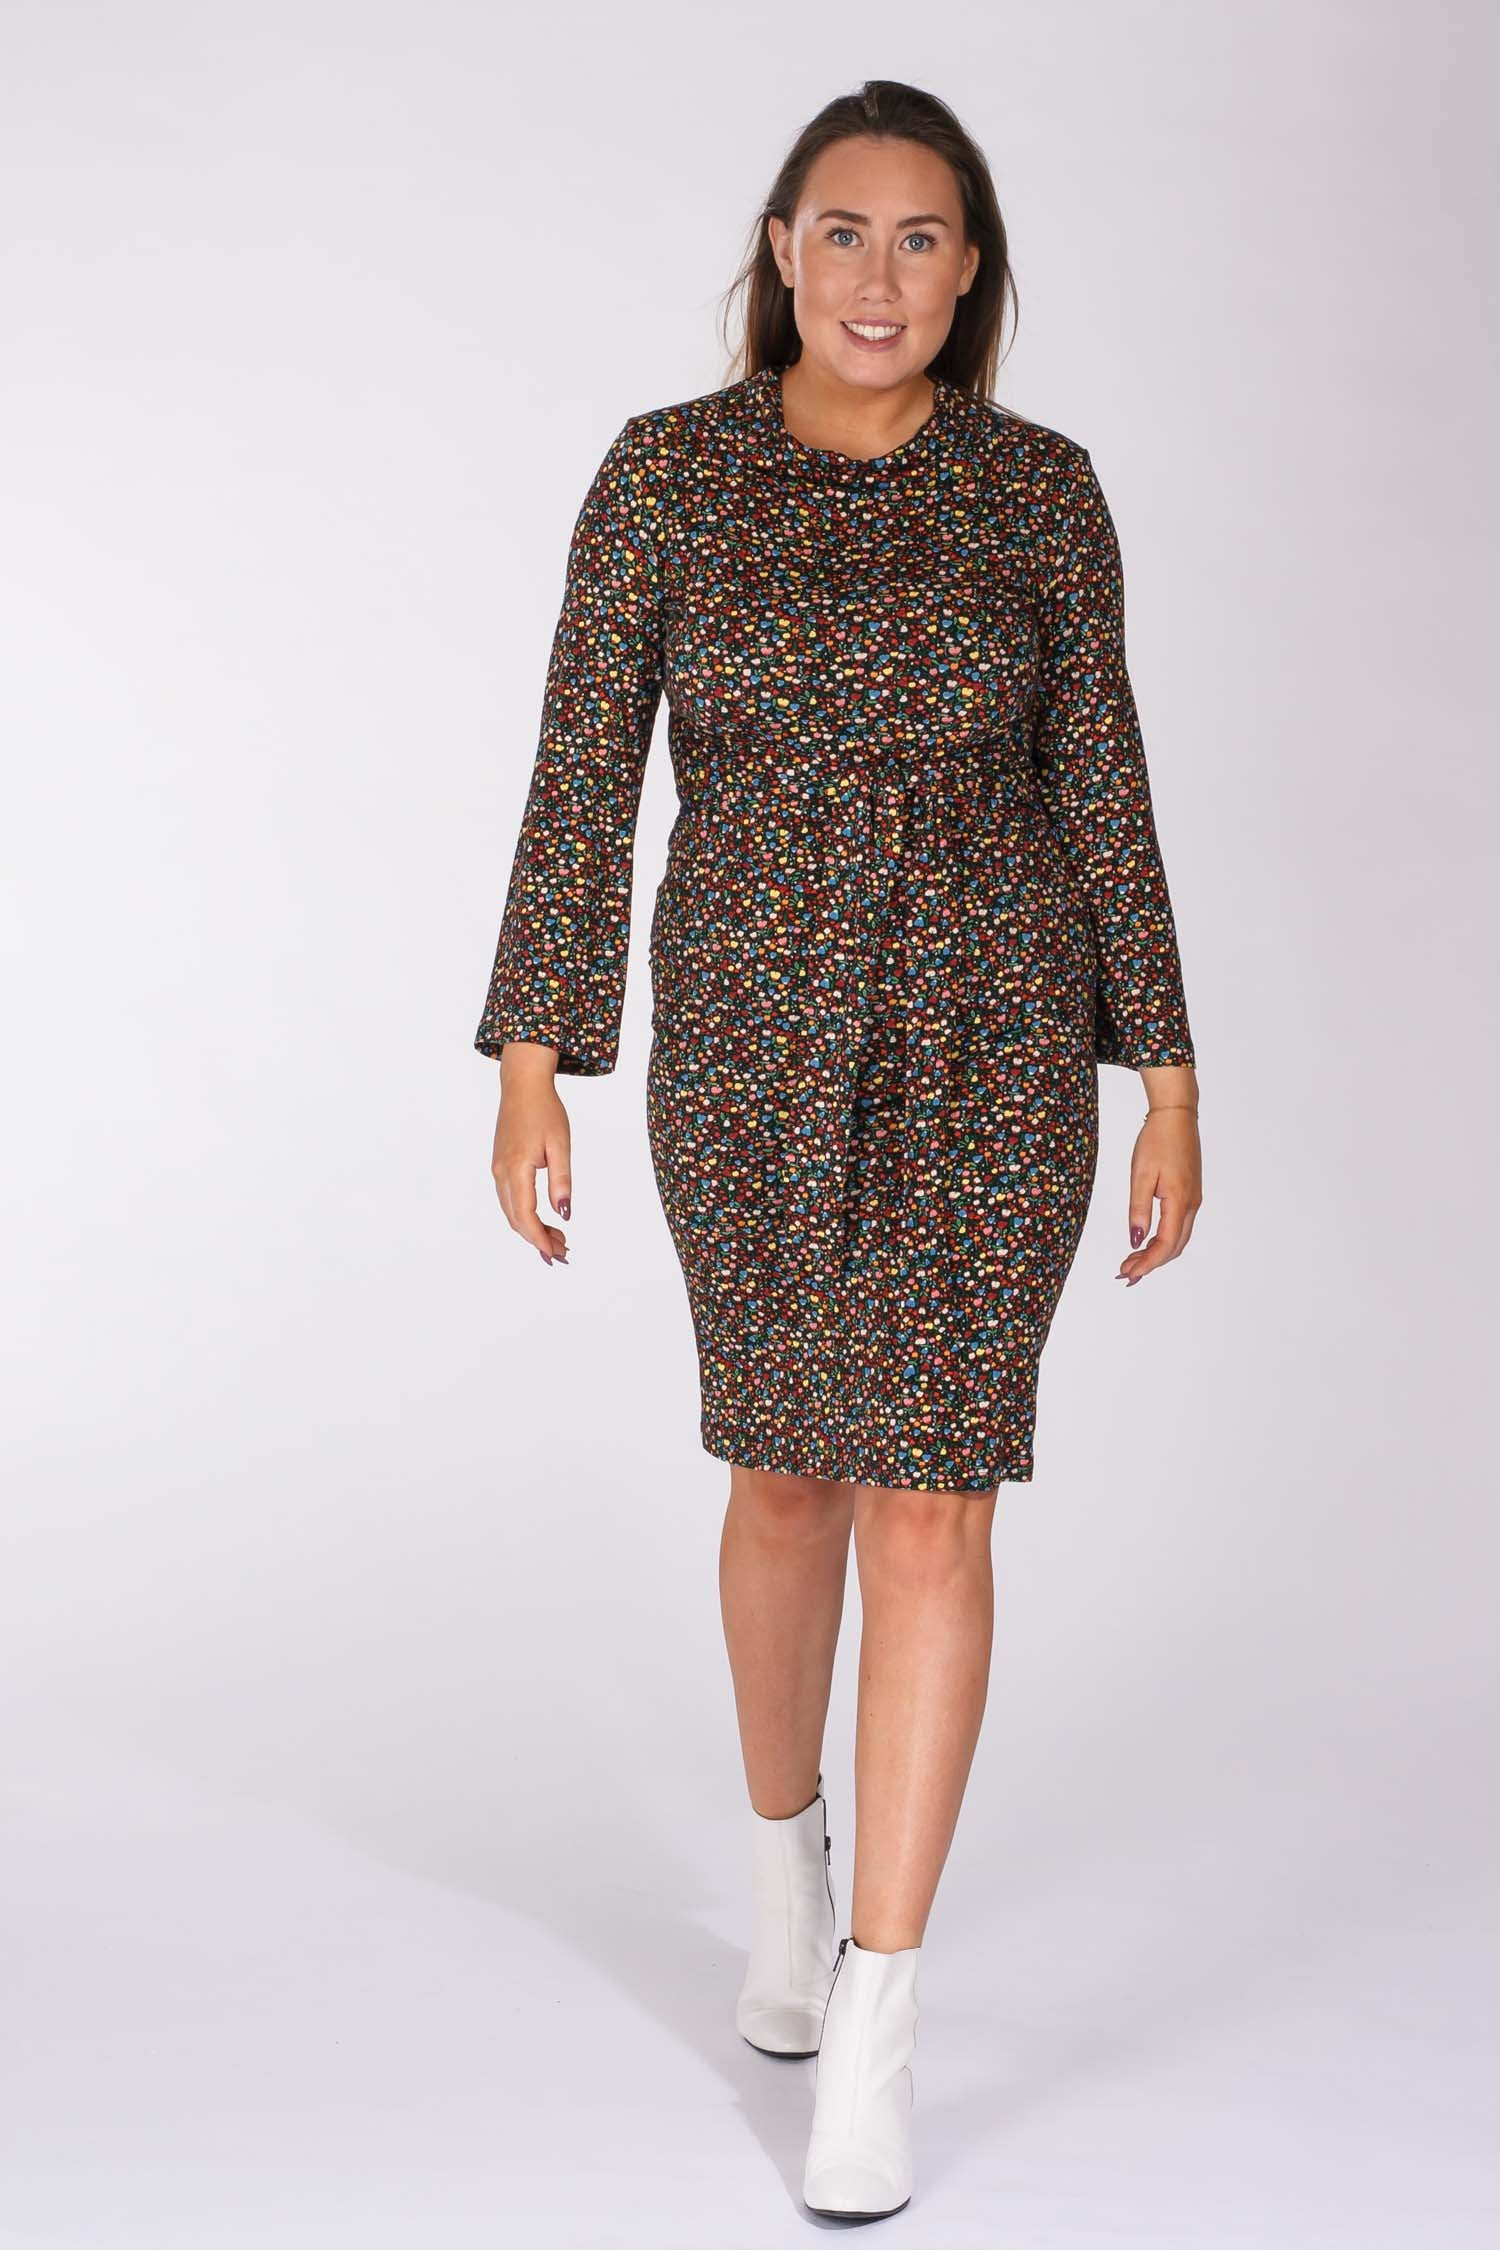 Printed Tie me curvy jersey dress - Black liberty flowers